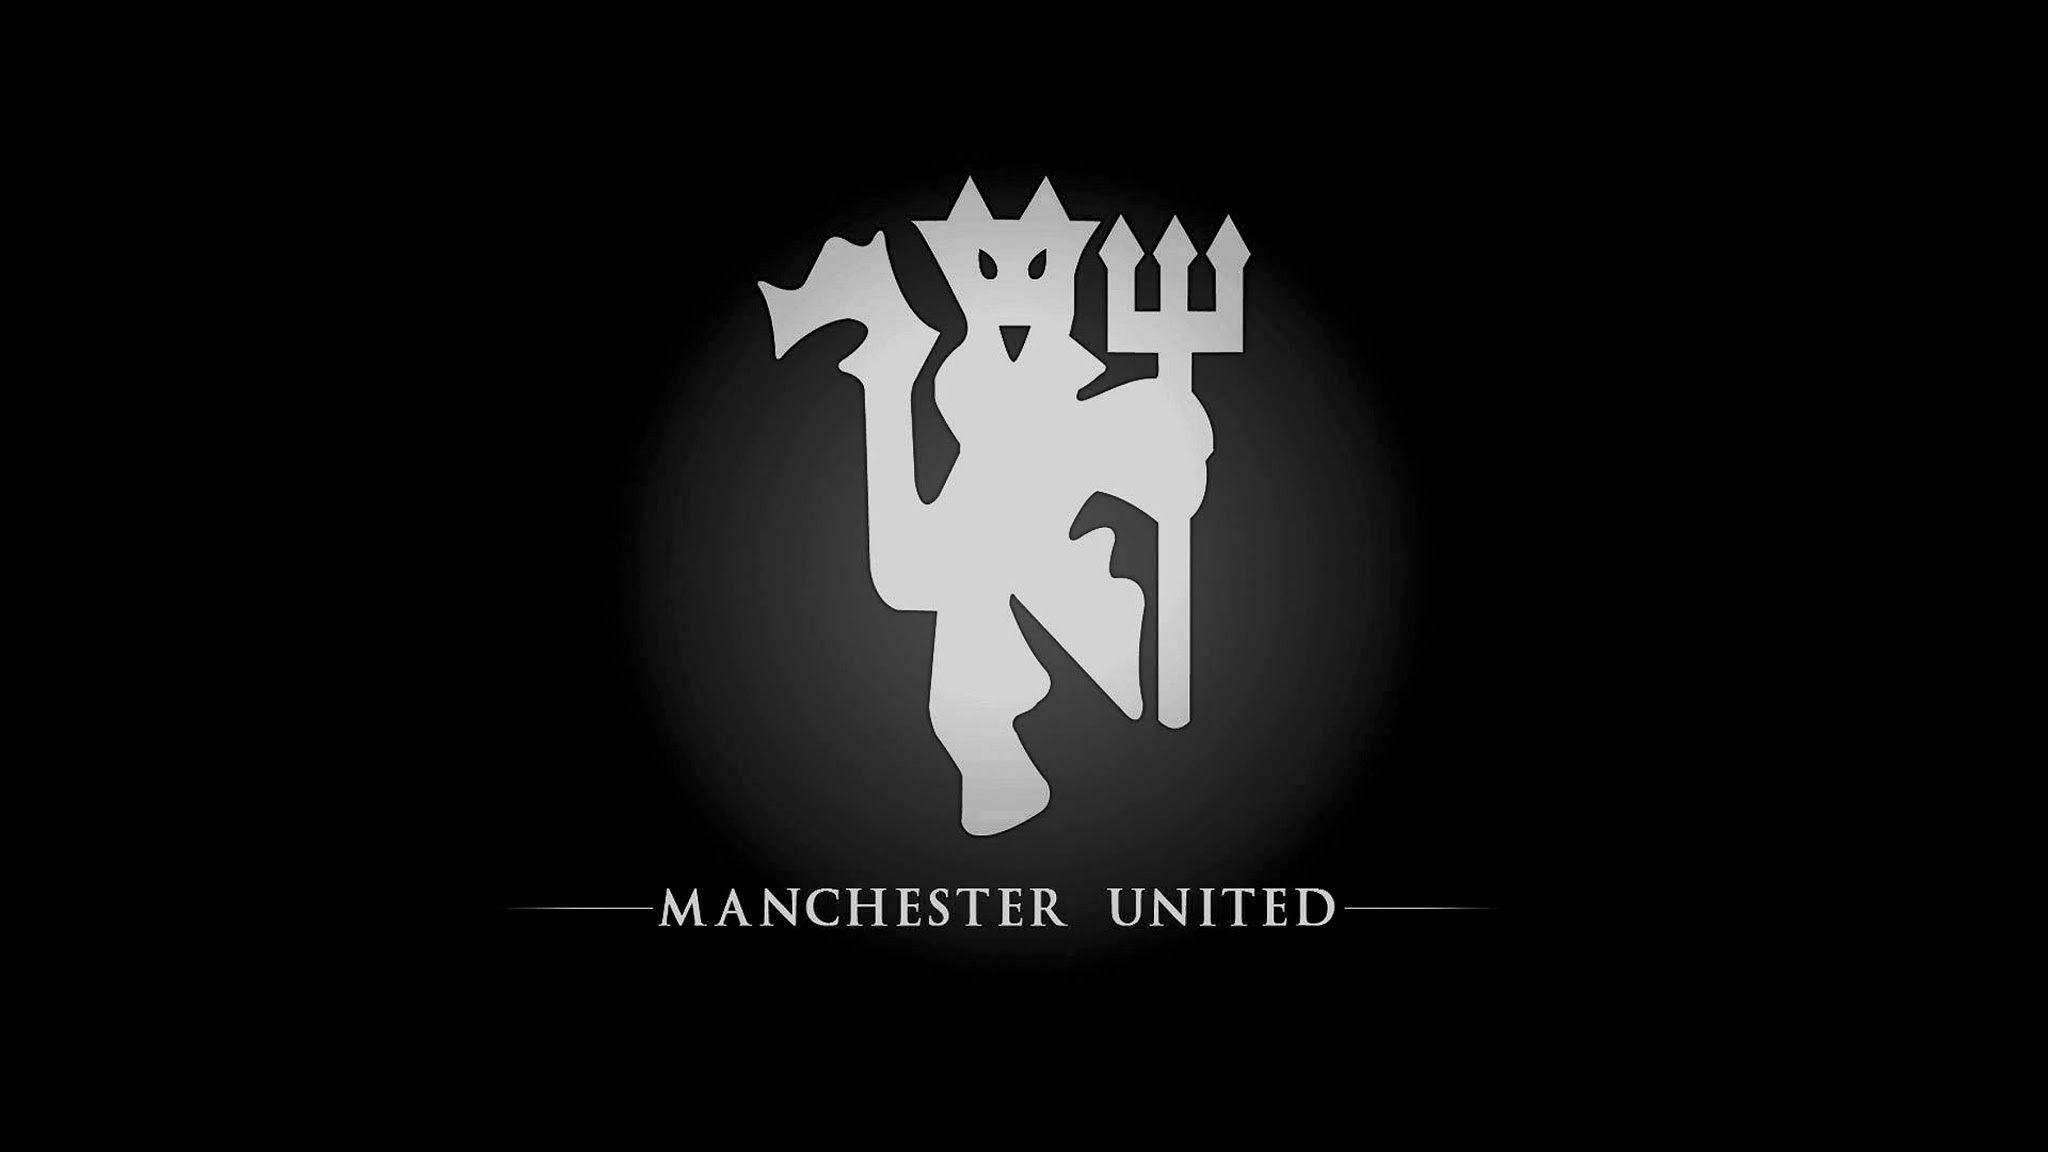 Manchester United Wallpaper 2018 (71+ Images